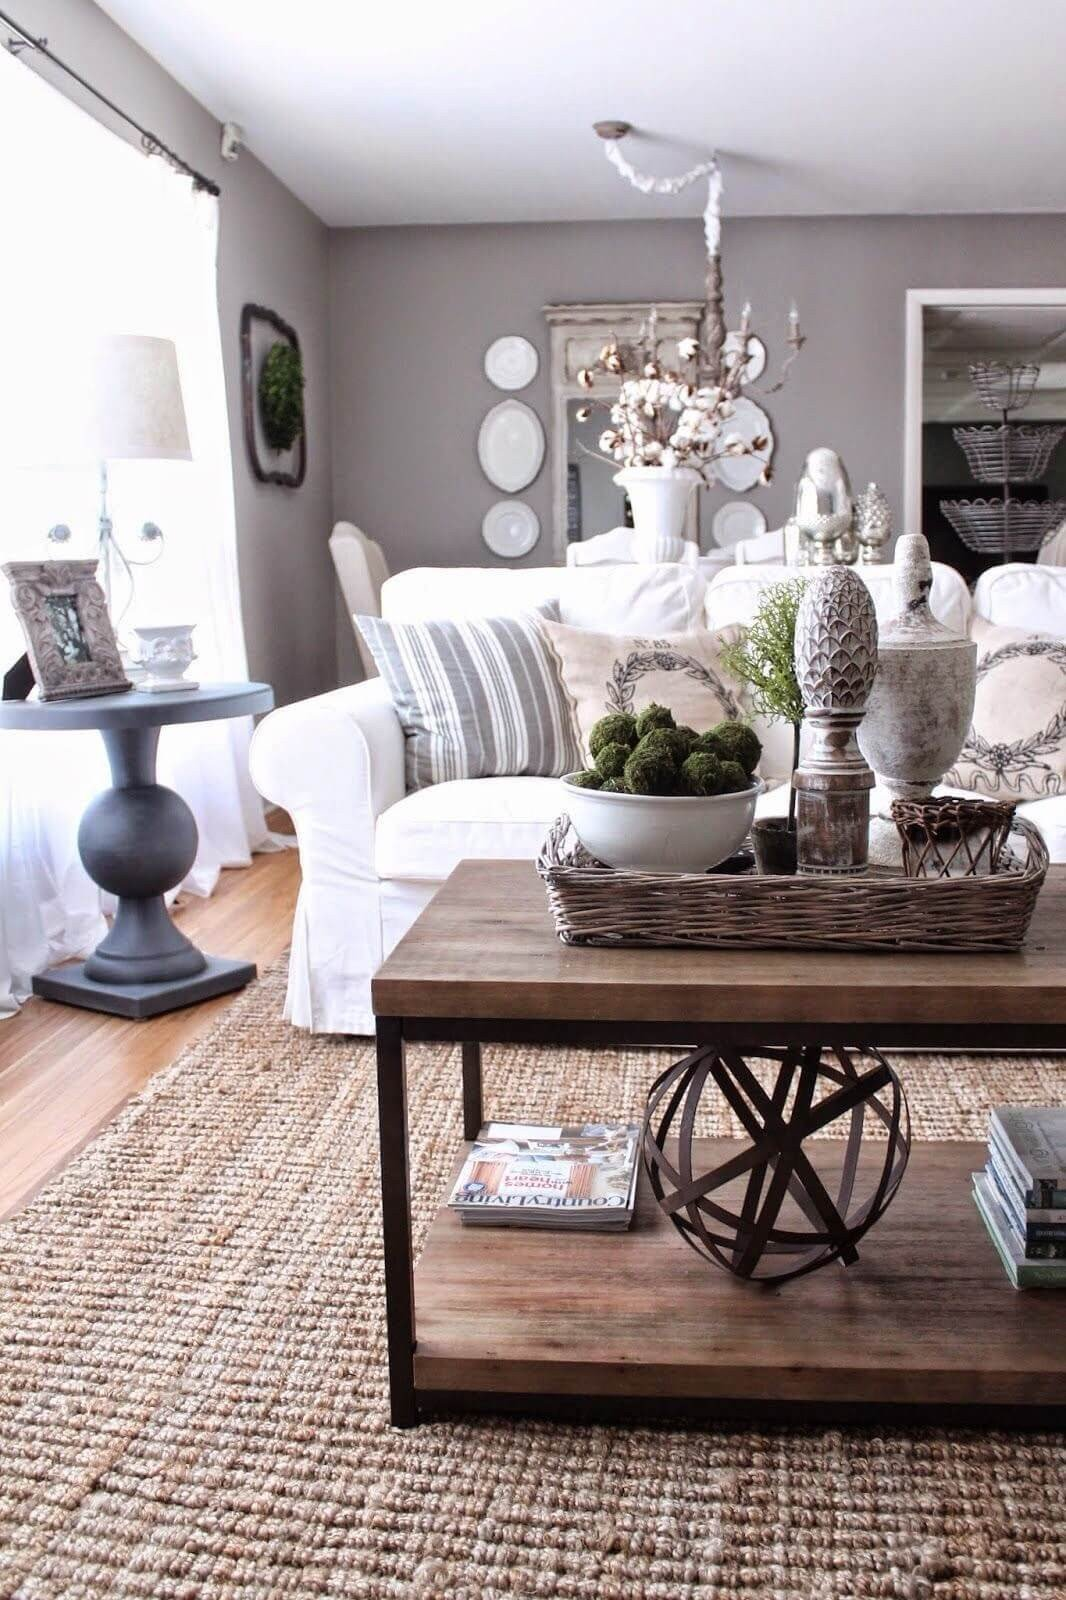 Decor Ideas for Coffee Tables Elegant 37 Best Coffee Table Decorating Ideas and Designs for 2017